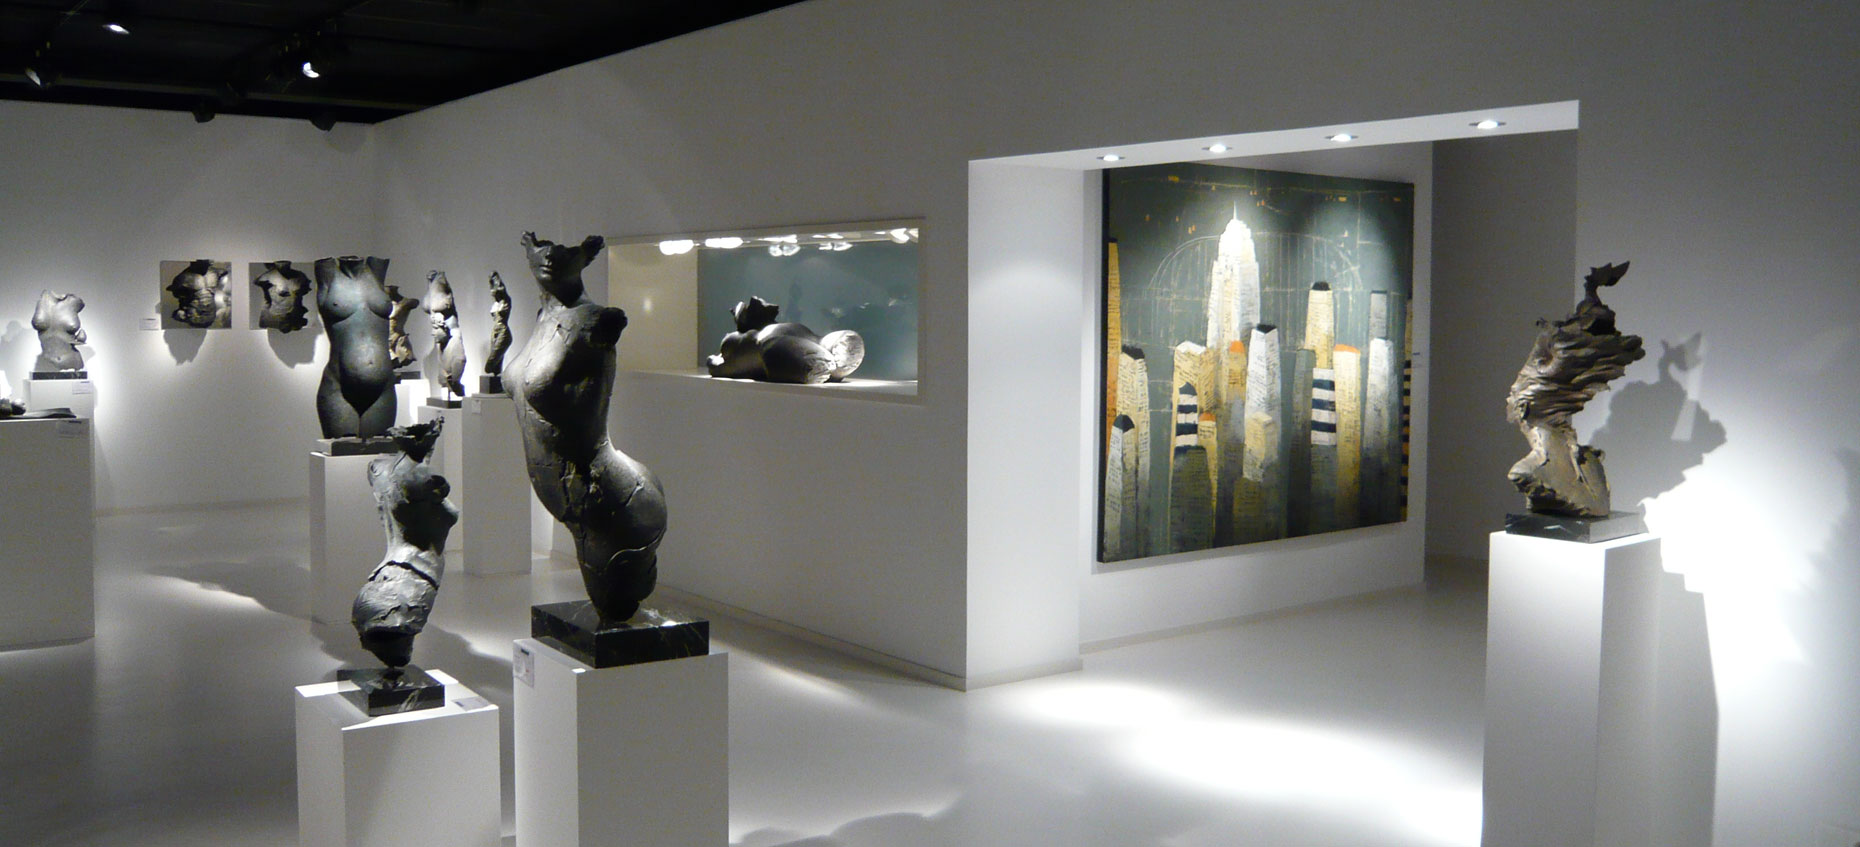 Etienne Gallery Holland